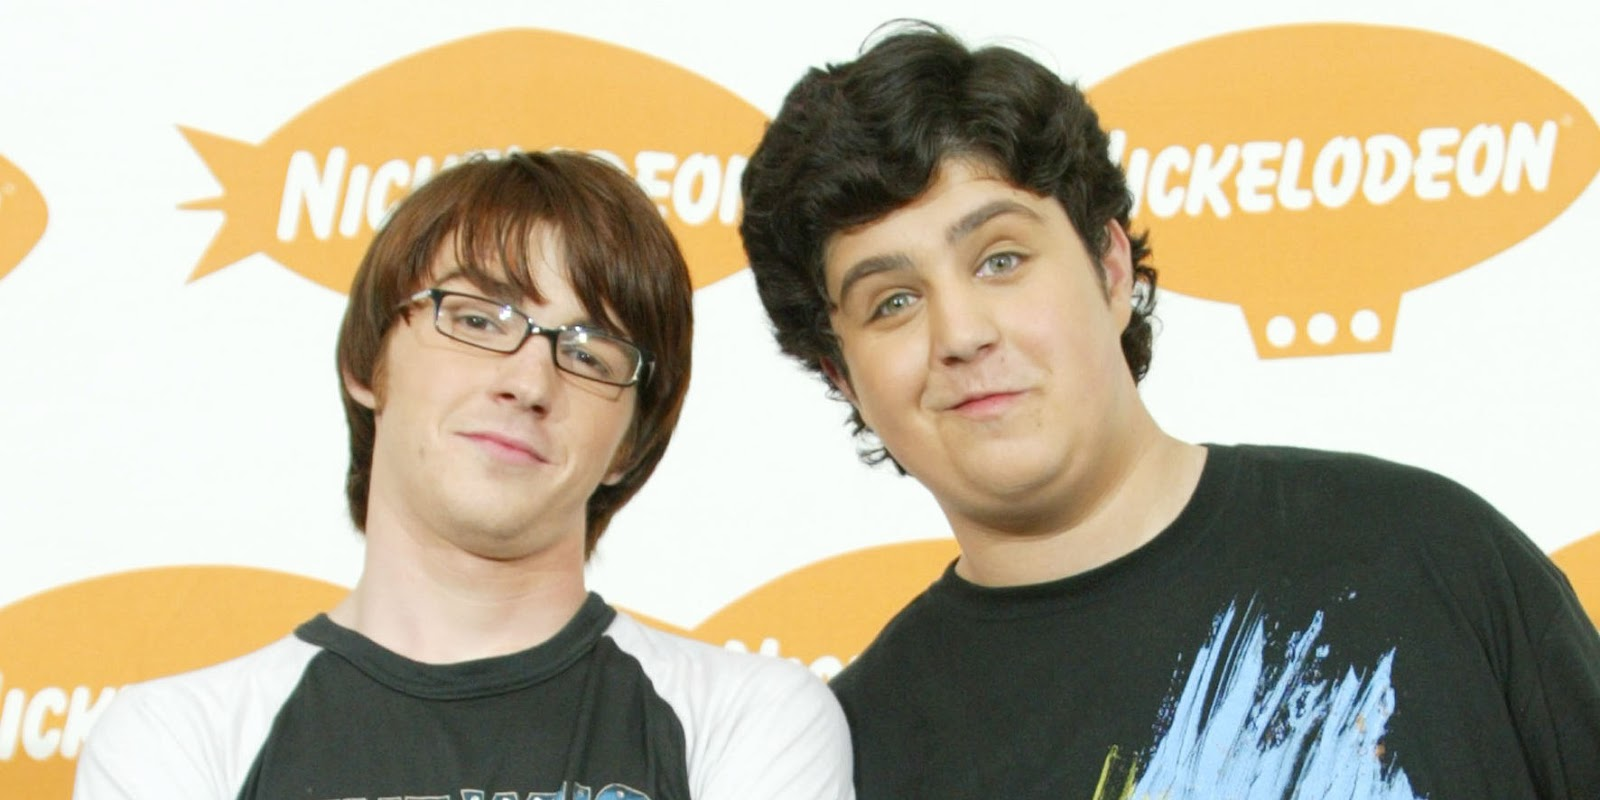 Drake and josh in a bra